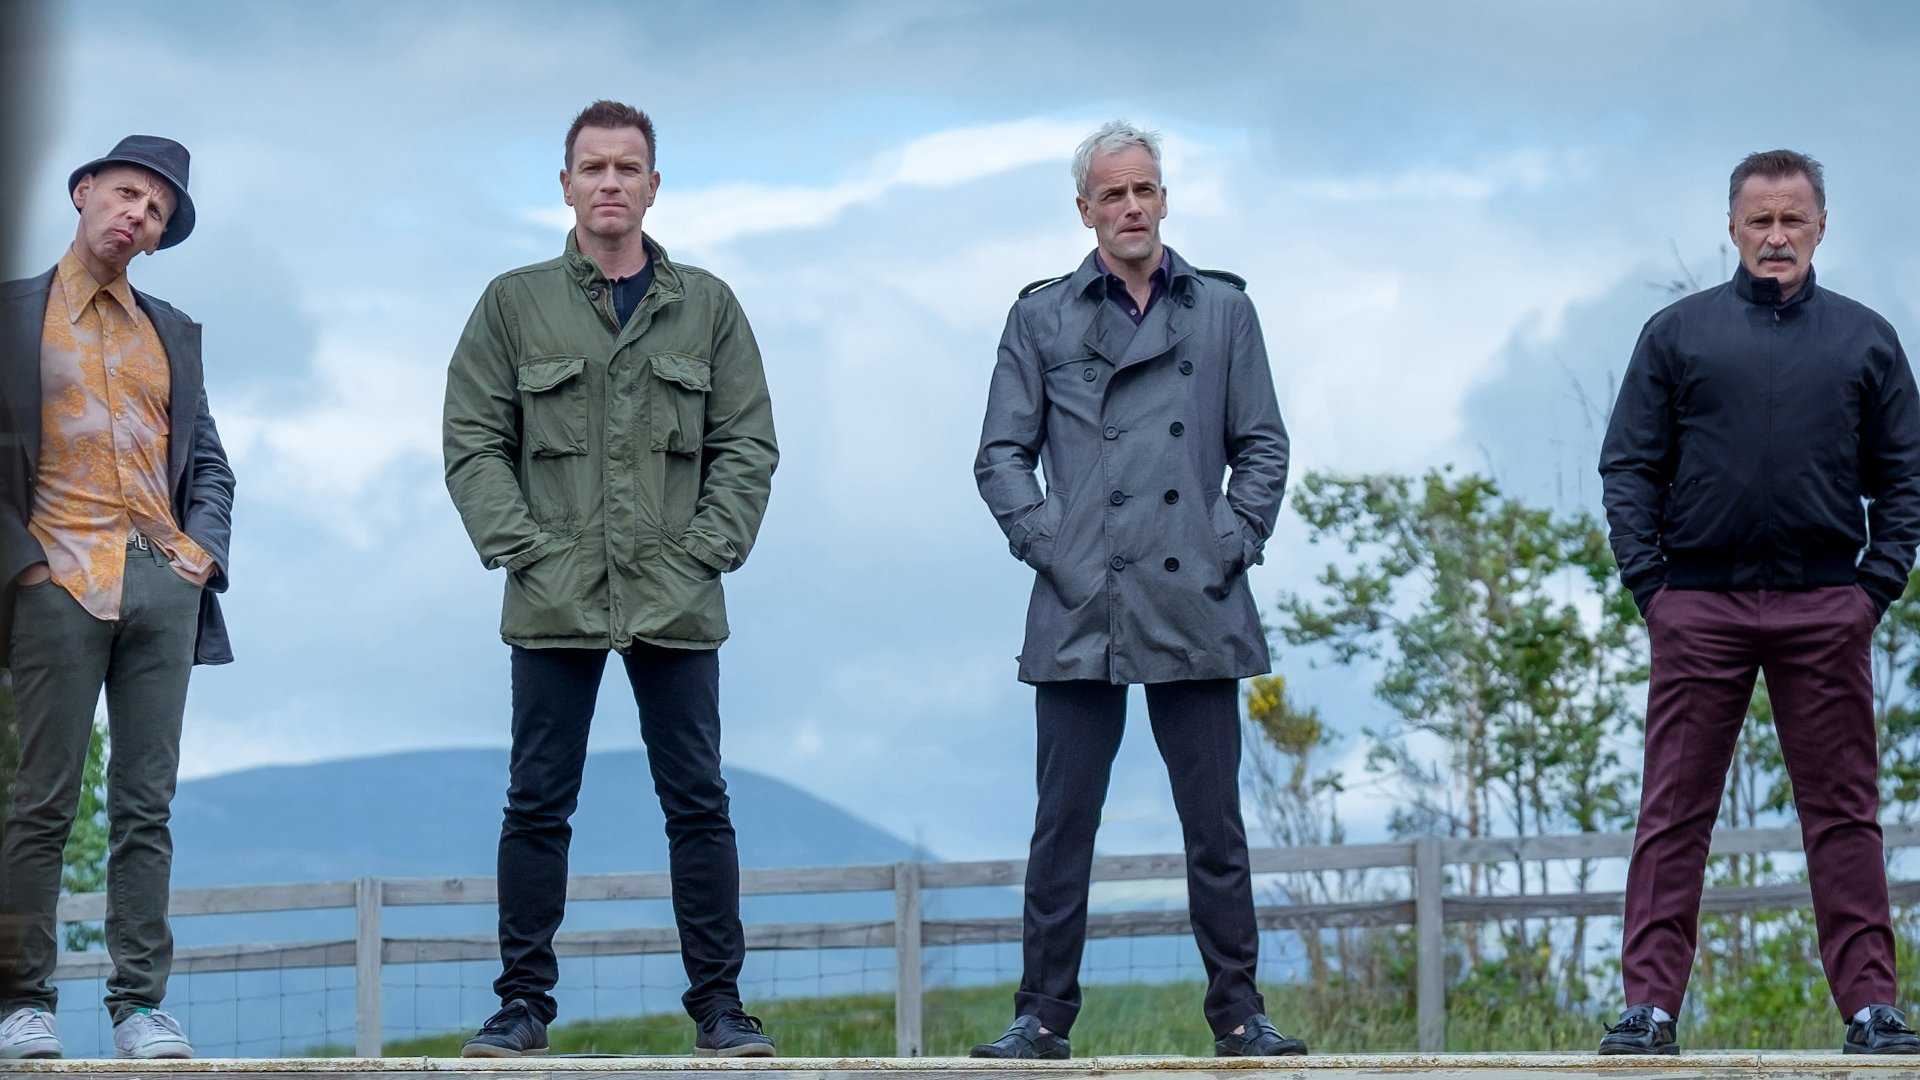 Cast of T2 Trainspotting